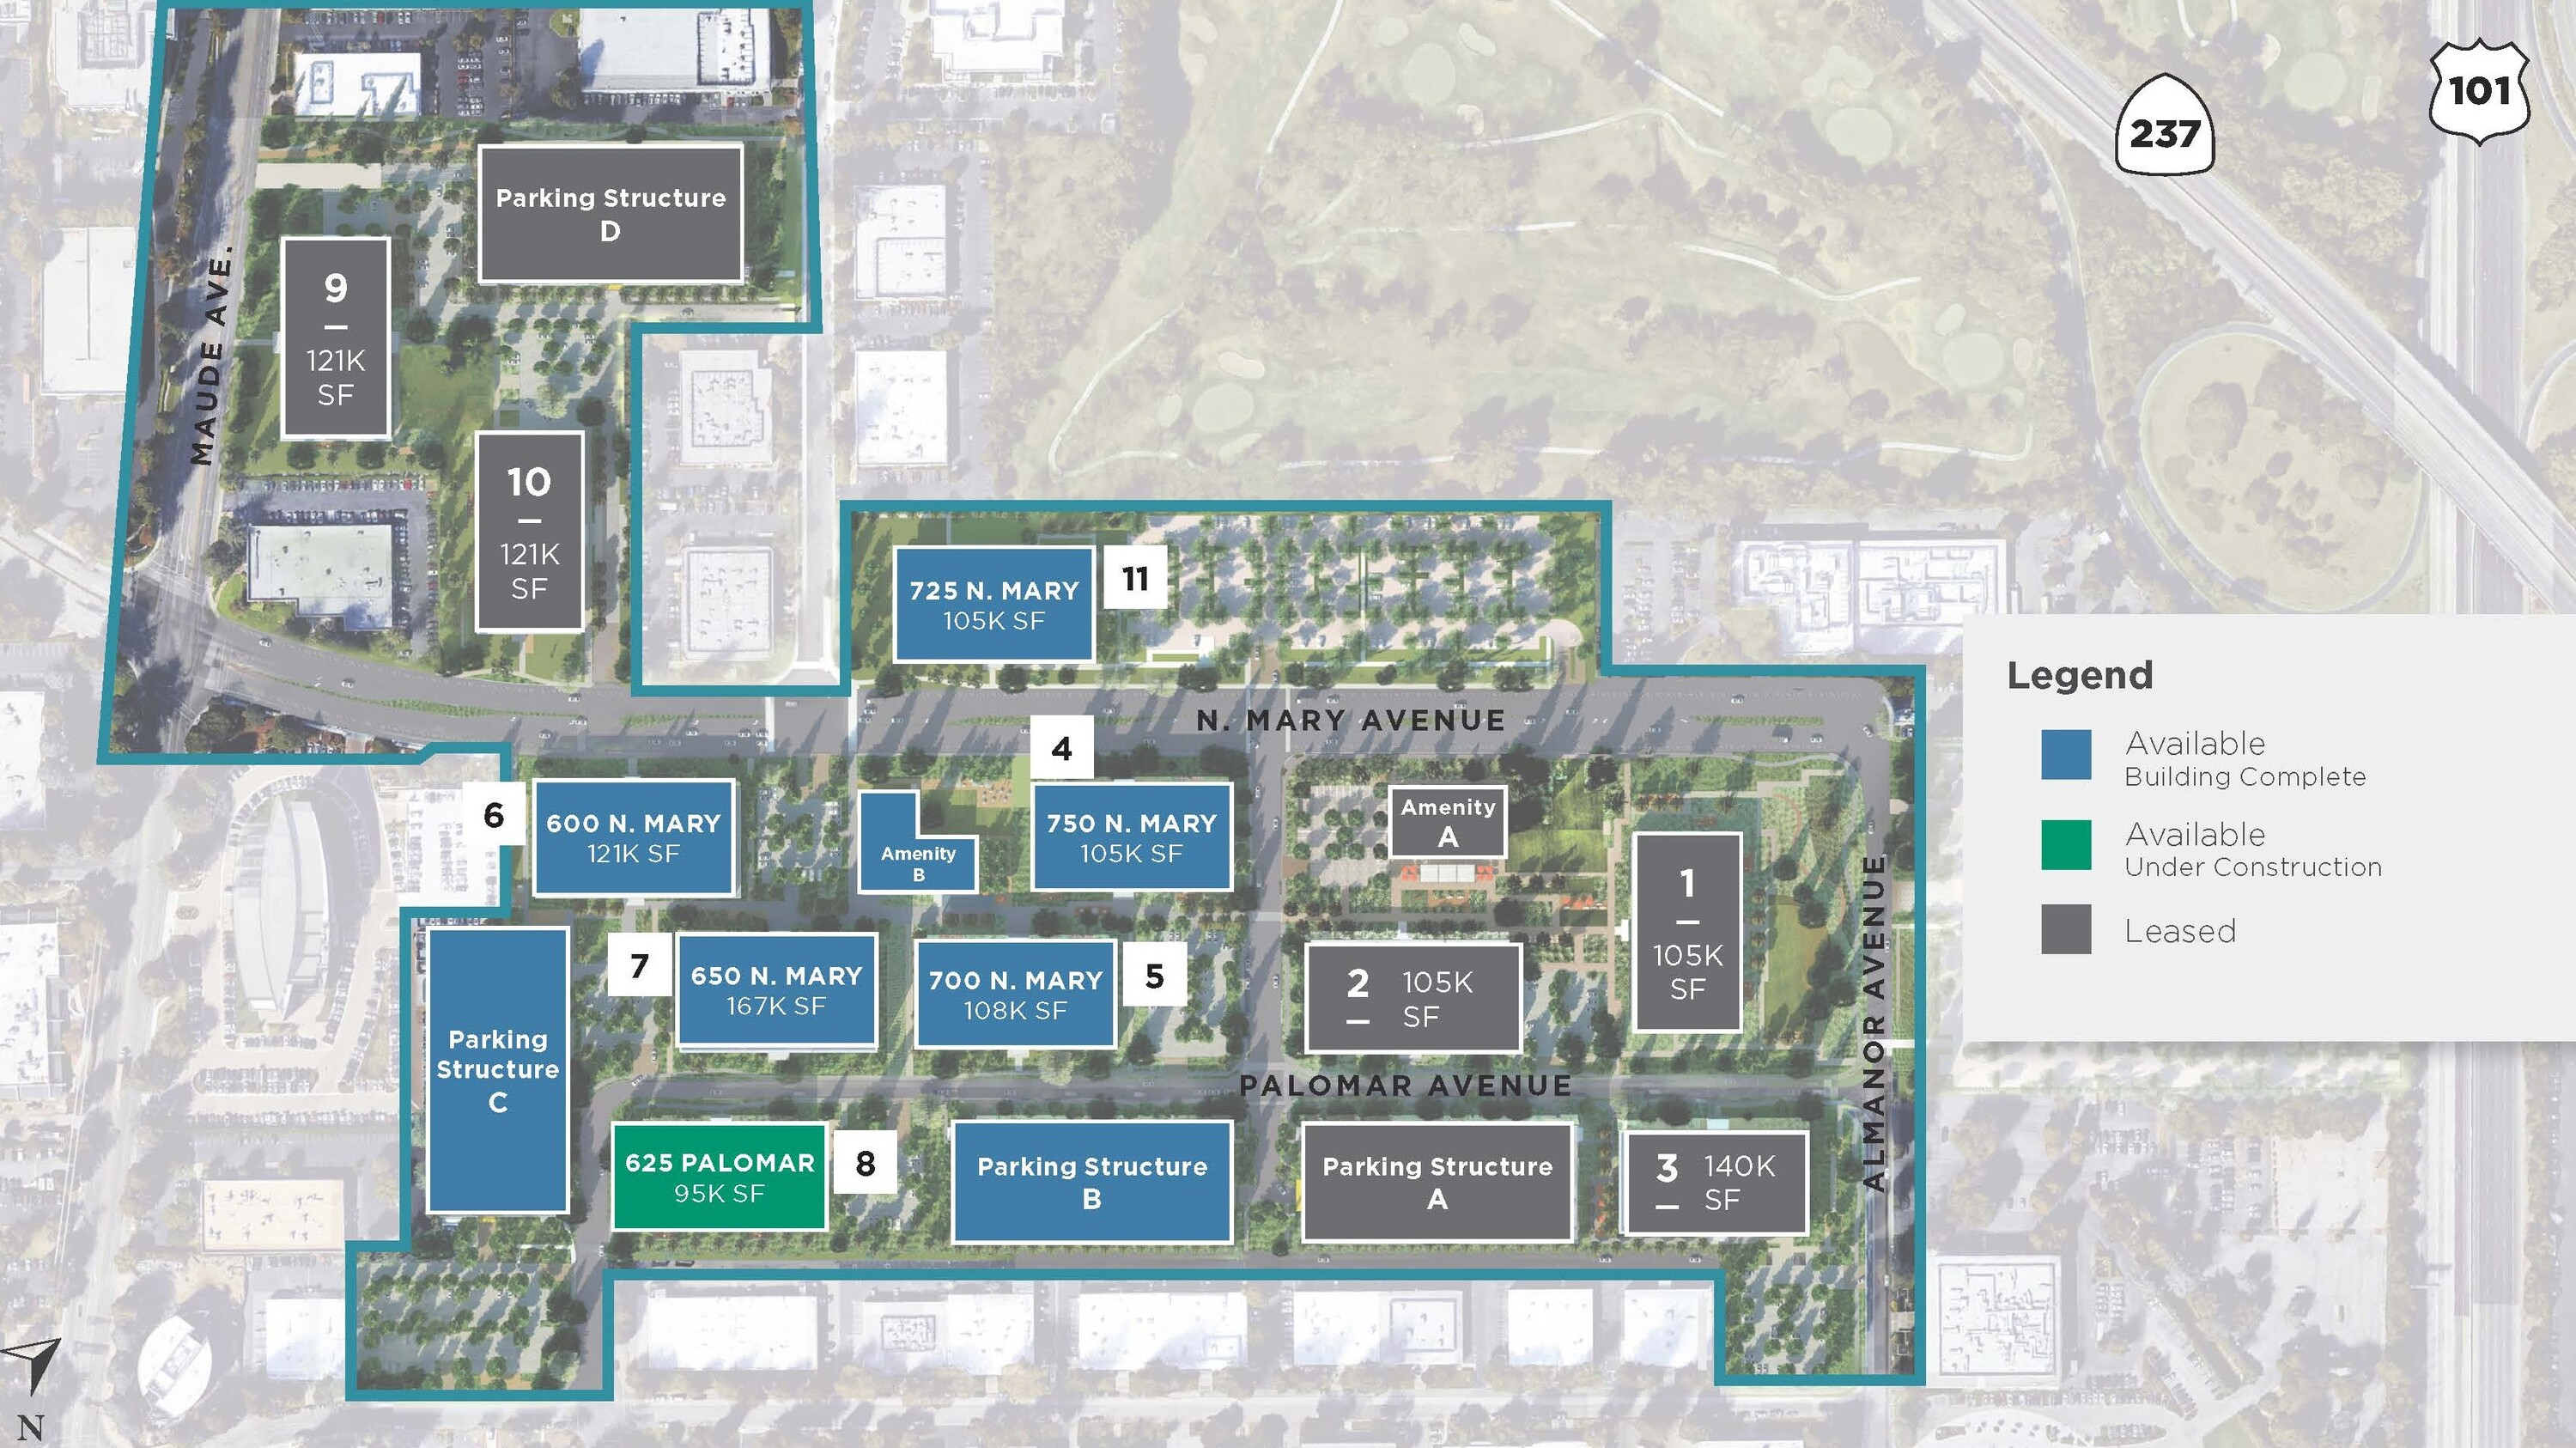 Site Map of Pathline Park in Sunnyvale, CA